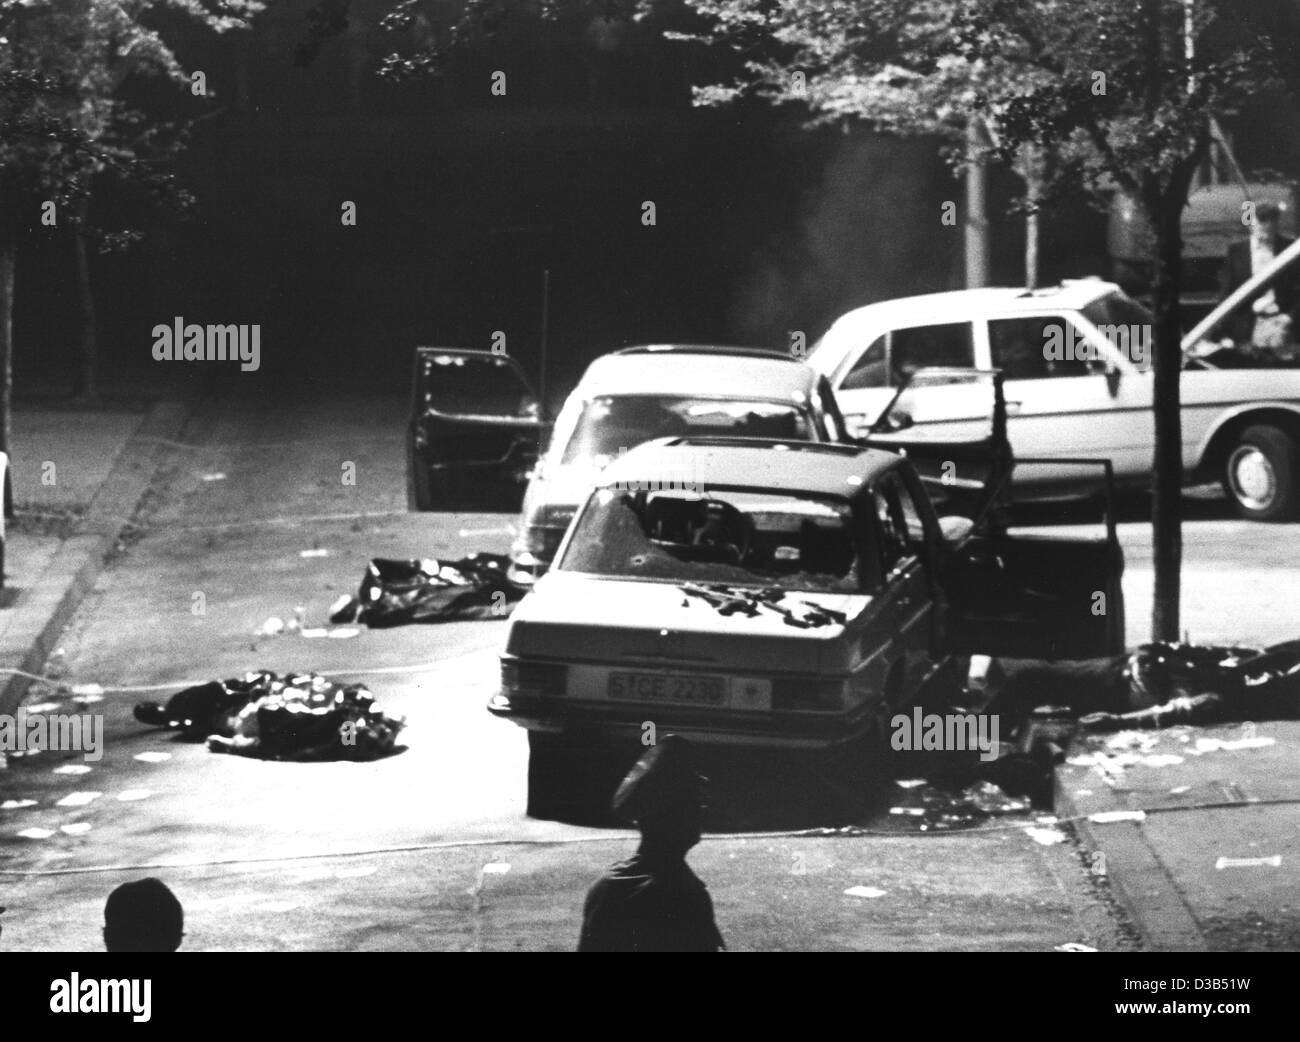 dpa files) - A general view of the site of crime where Hanns ...